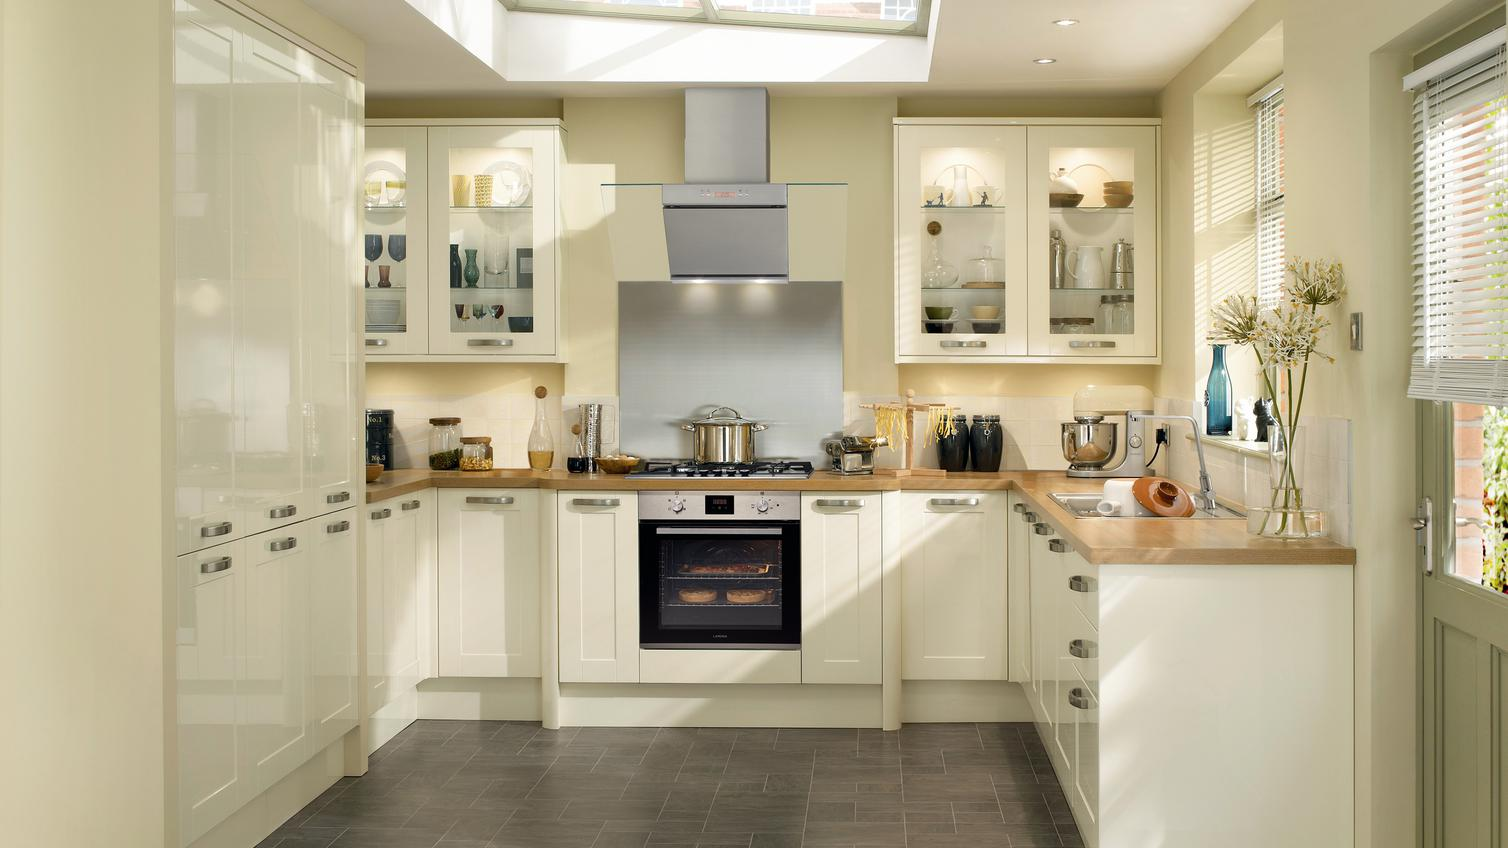 U-Shaped Kitchens: Ideas to Inspire You | Howdens